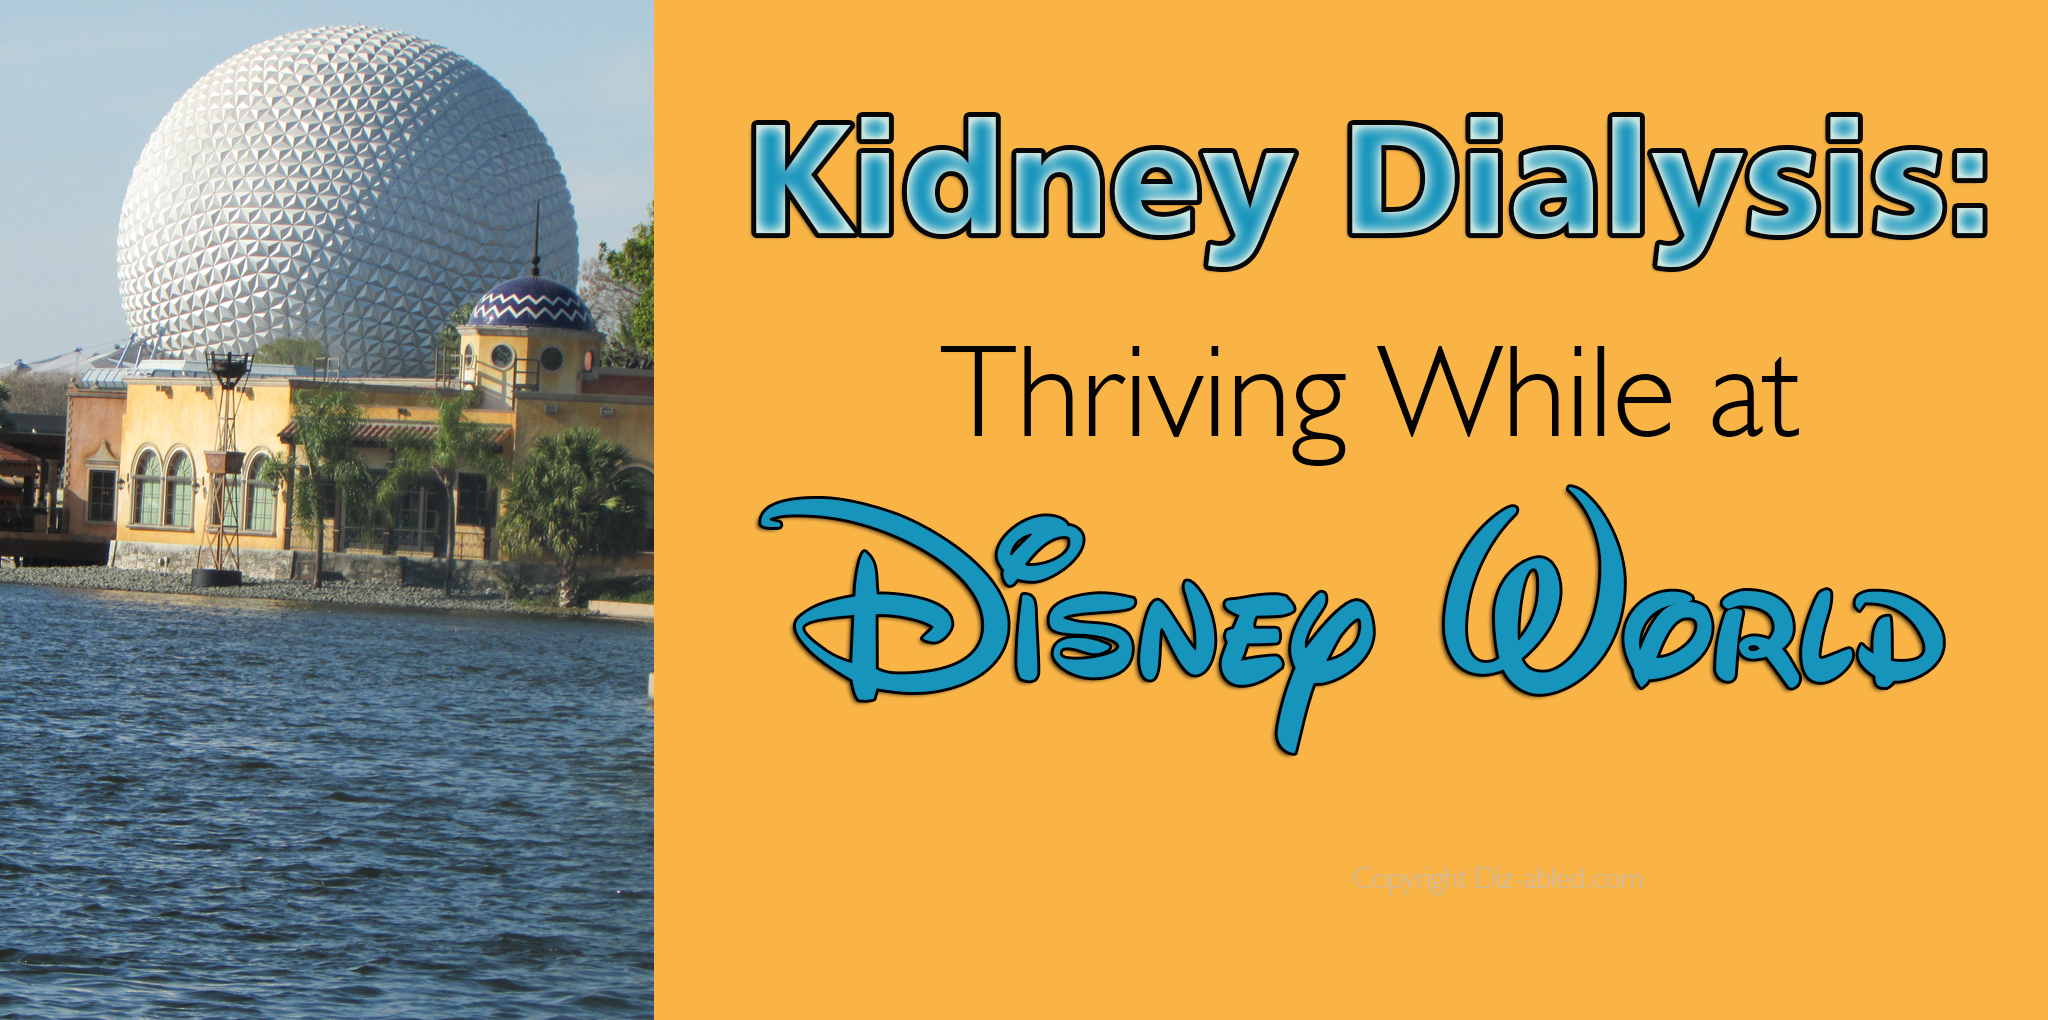 Kidney Dialysis: Thriving While at Disney World - Walt